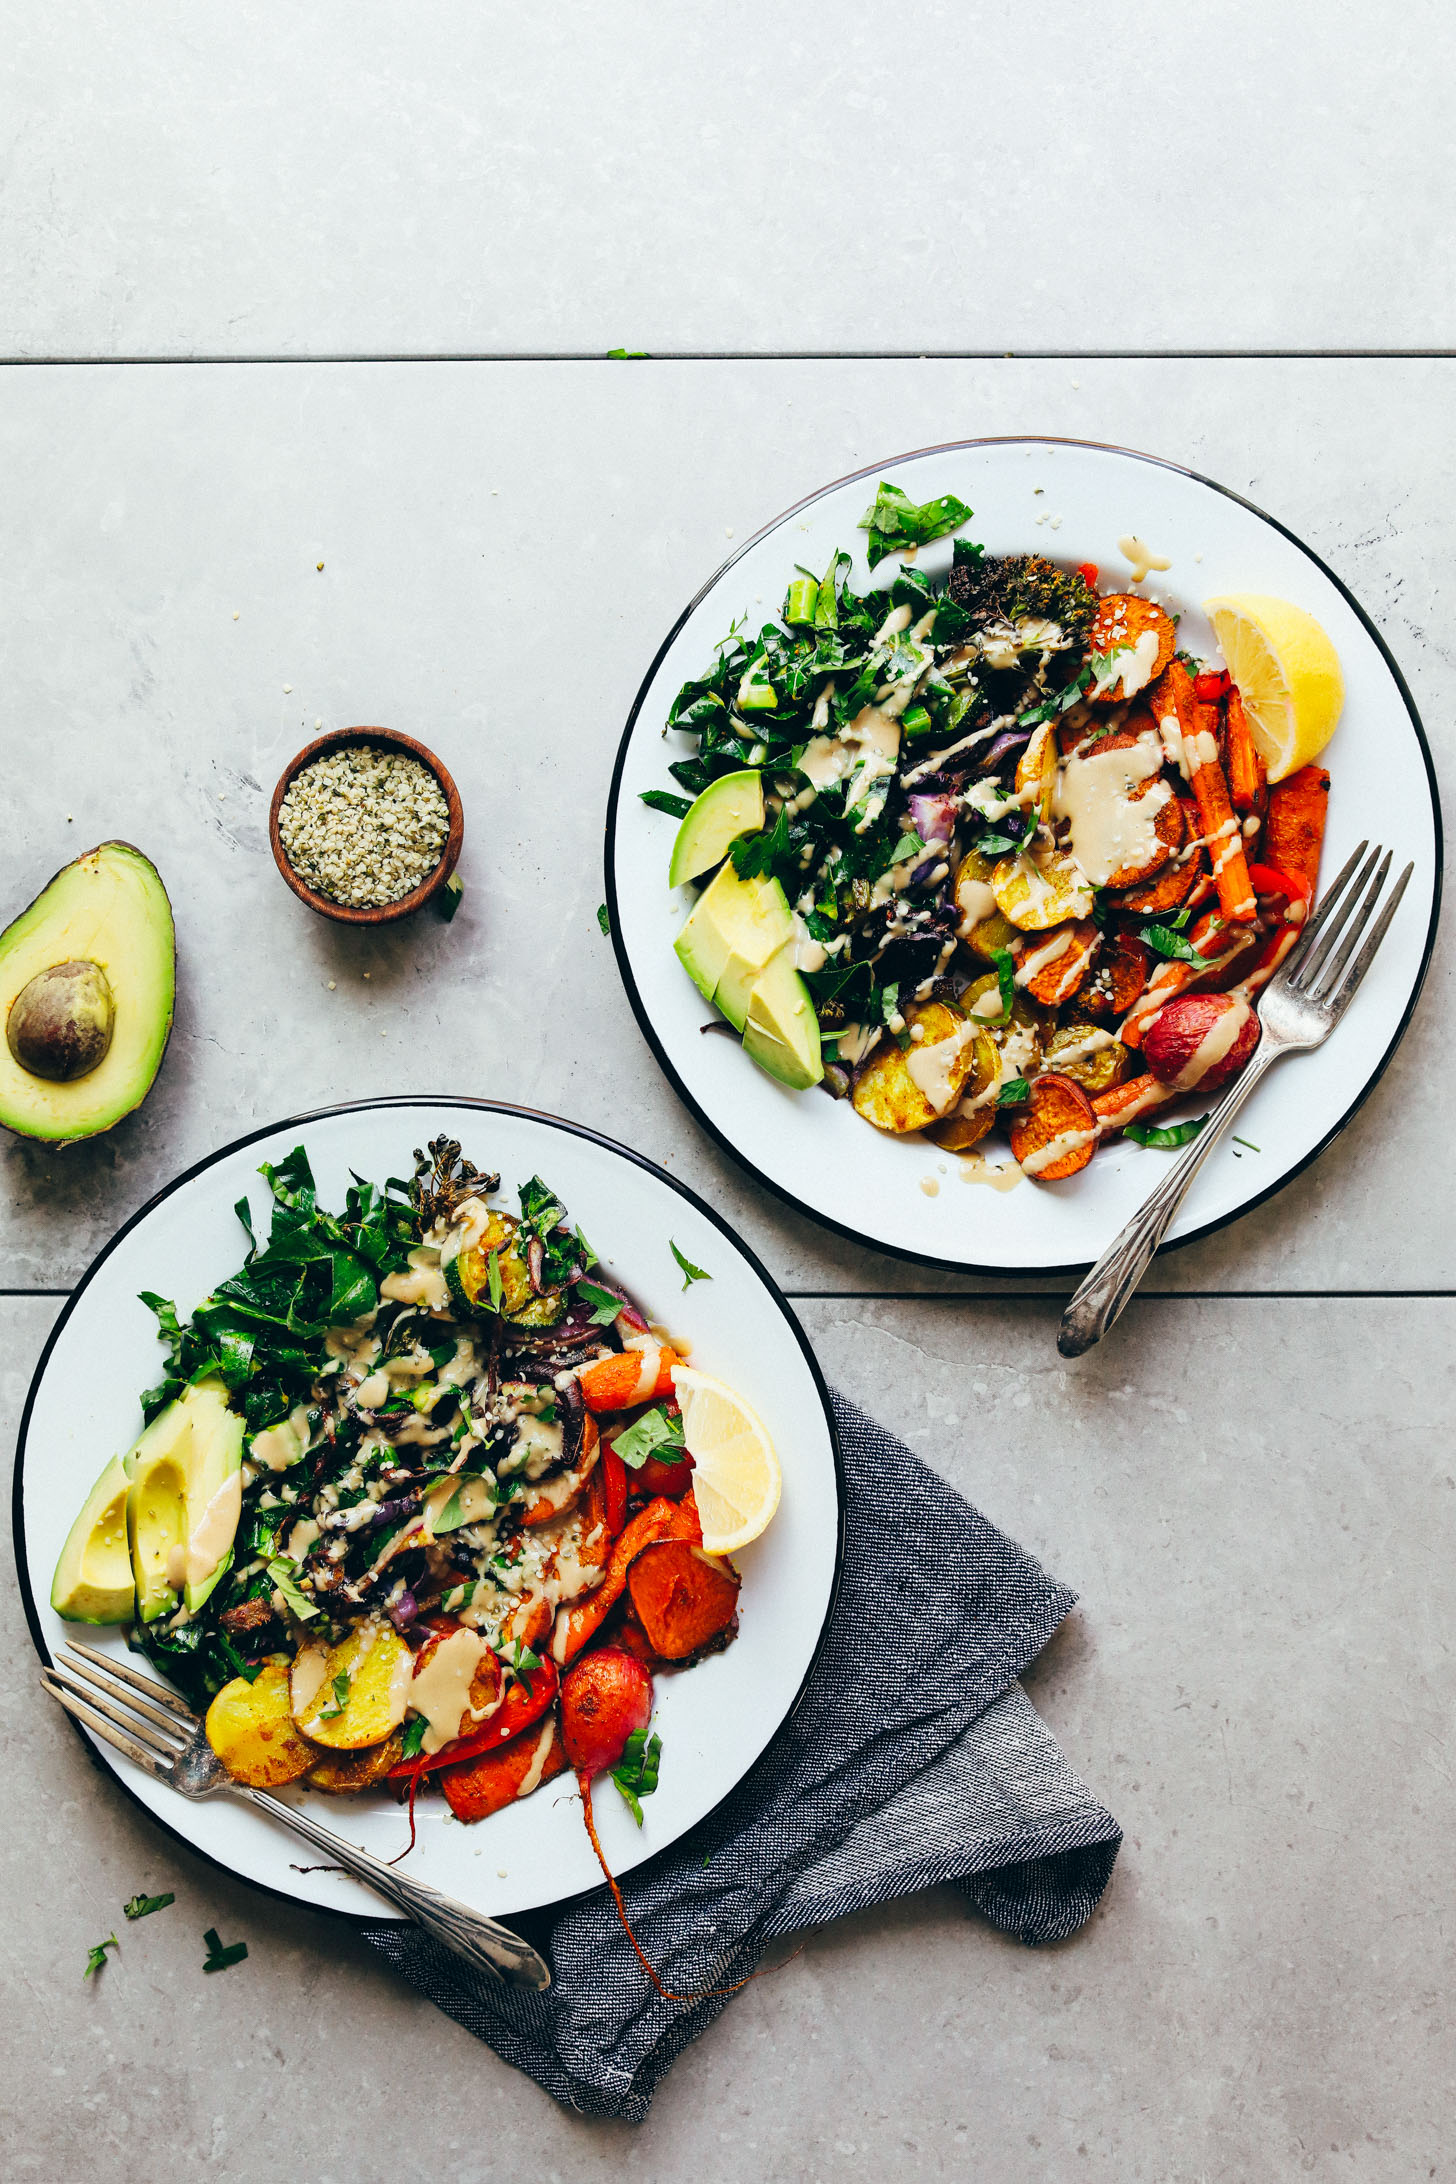 Two big dinner bowls full of Roasted Rainbow Vegetables, avocado, hemp seeds, and tahini dressing